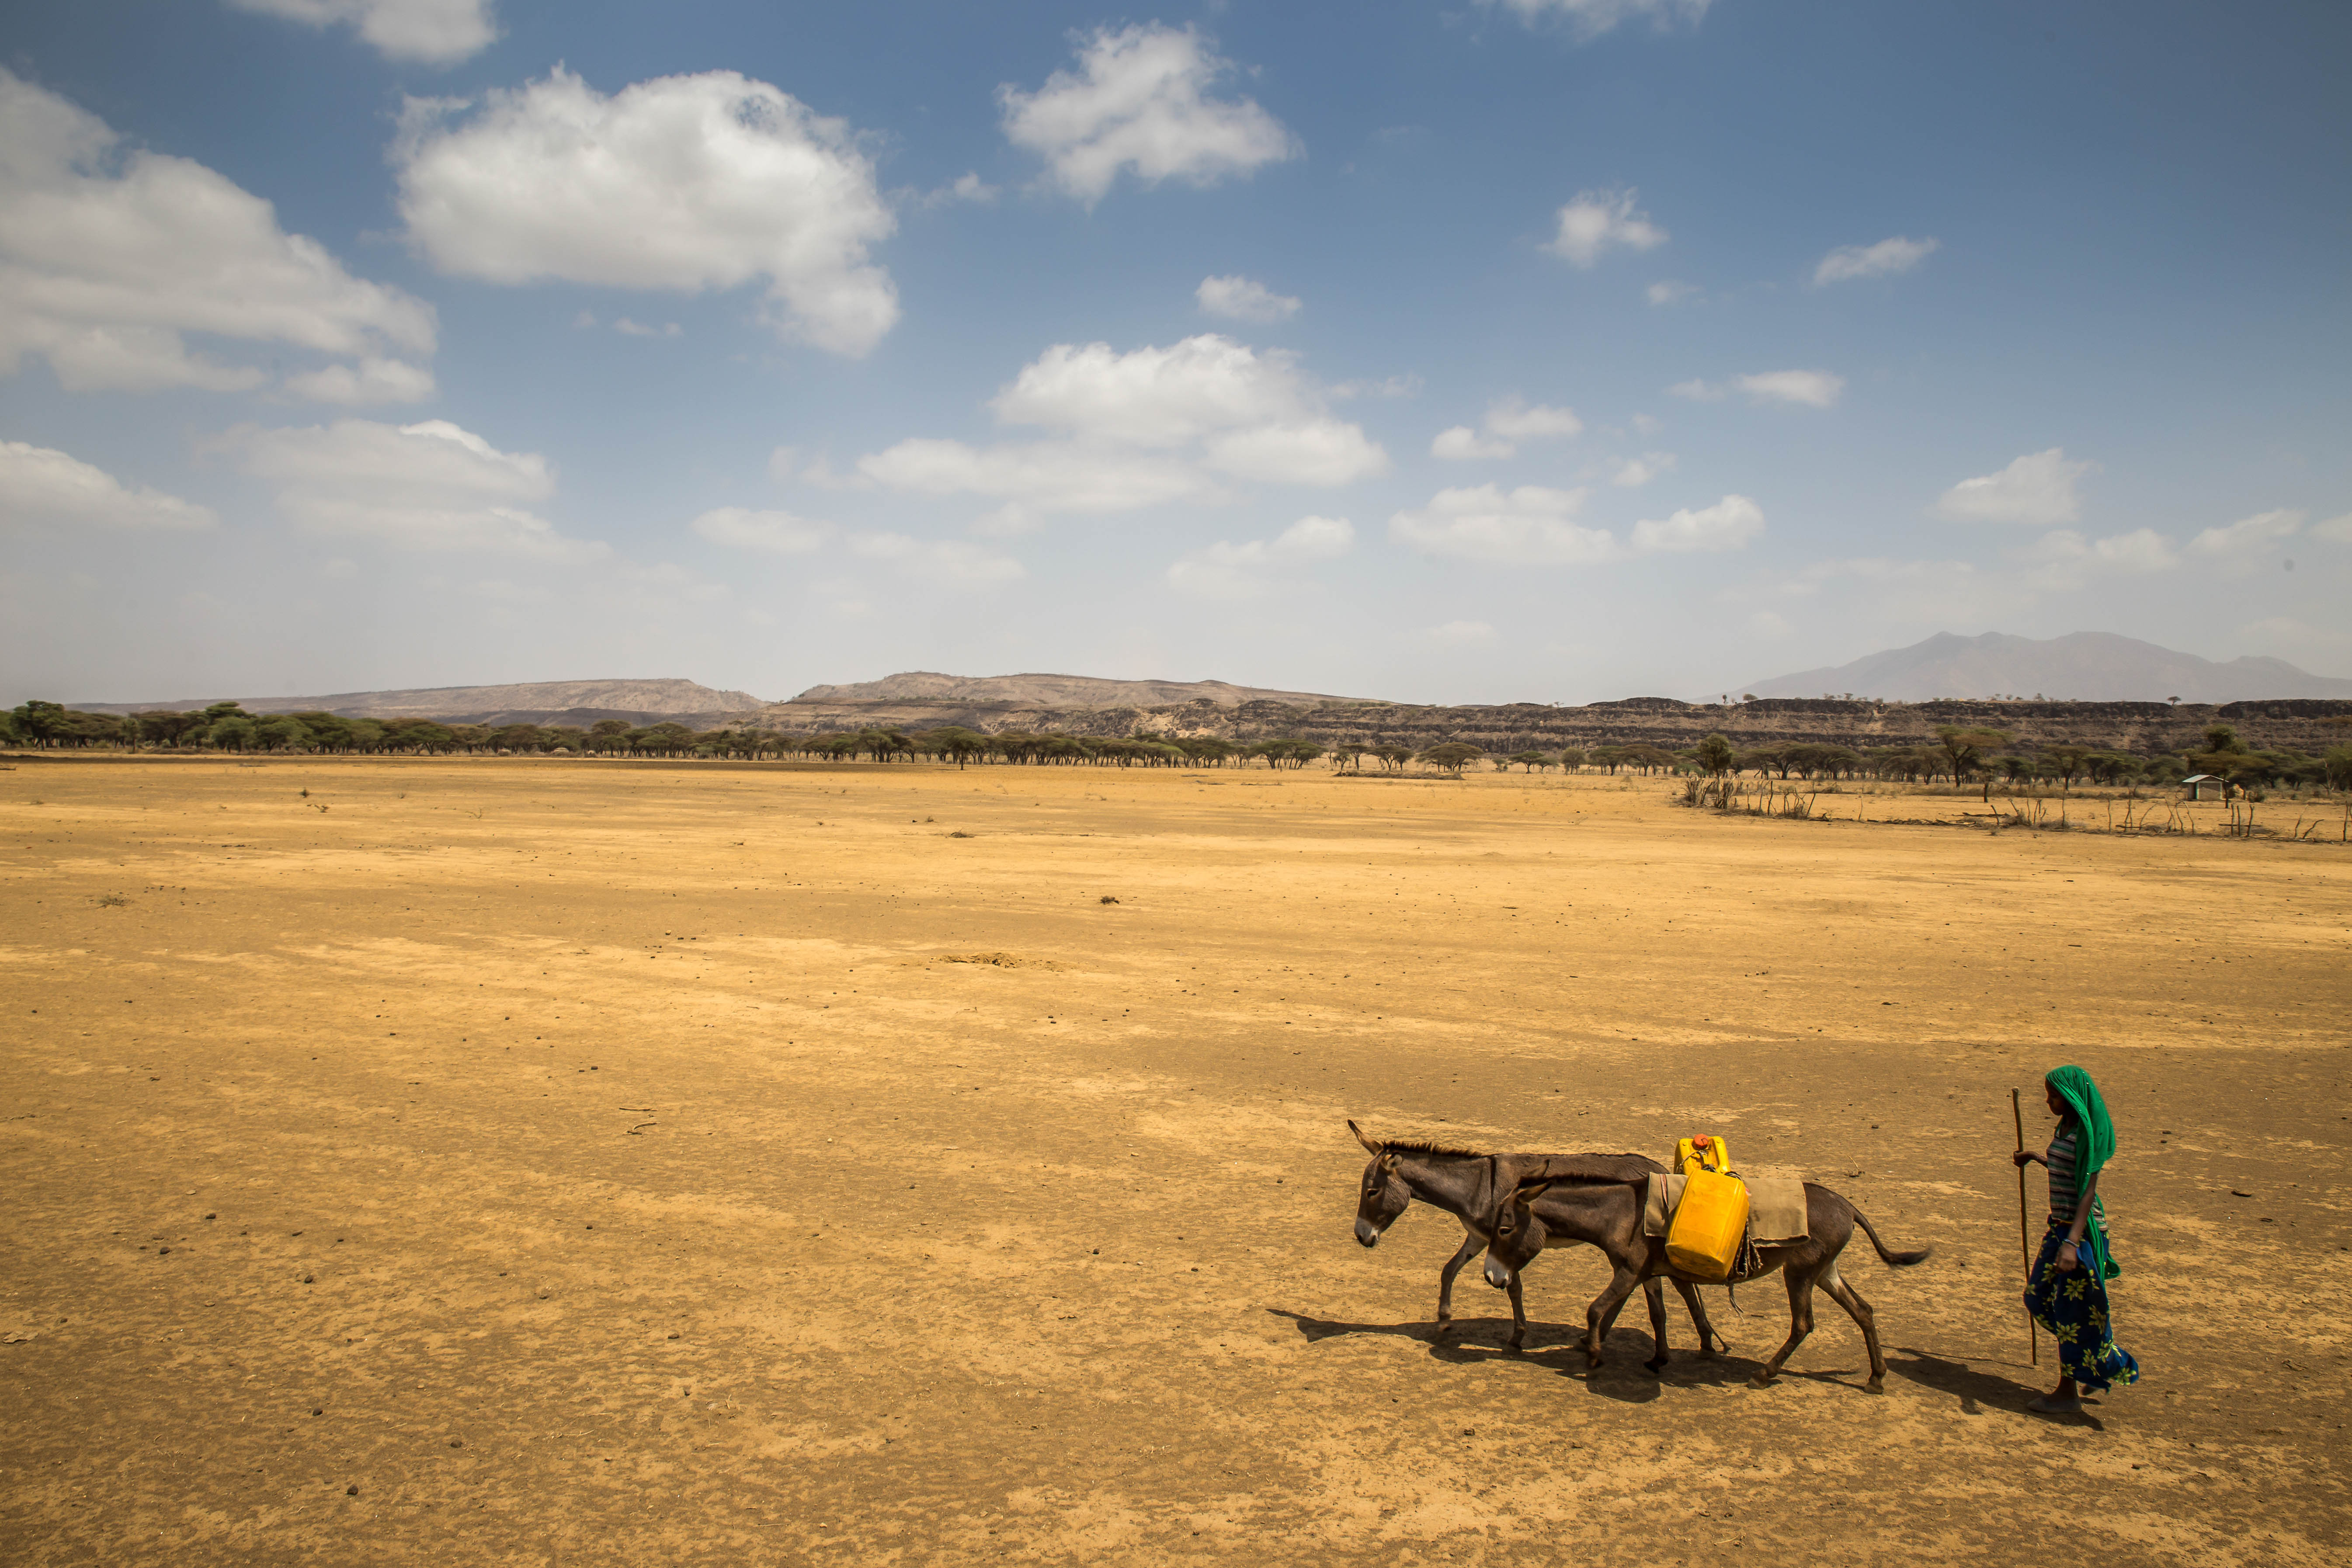 Woman walking with donkeys carrying water during drought in Ethiopia. Credit: Ayene, UNICEF Ethiopia